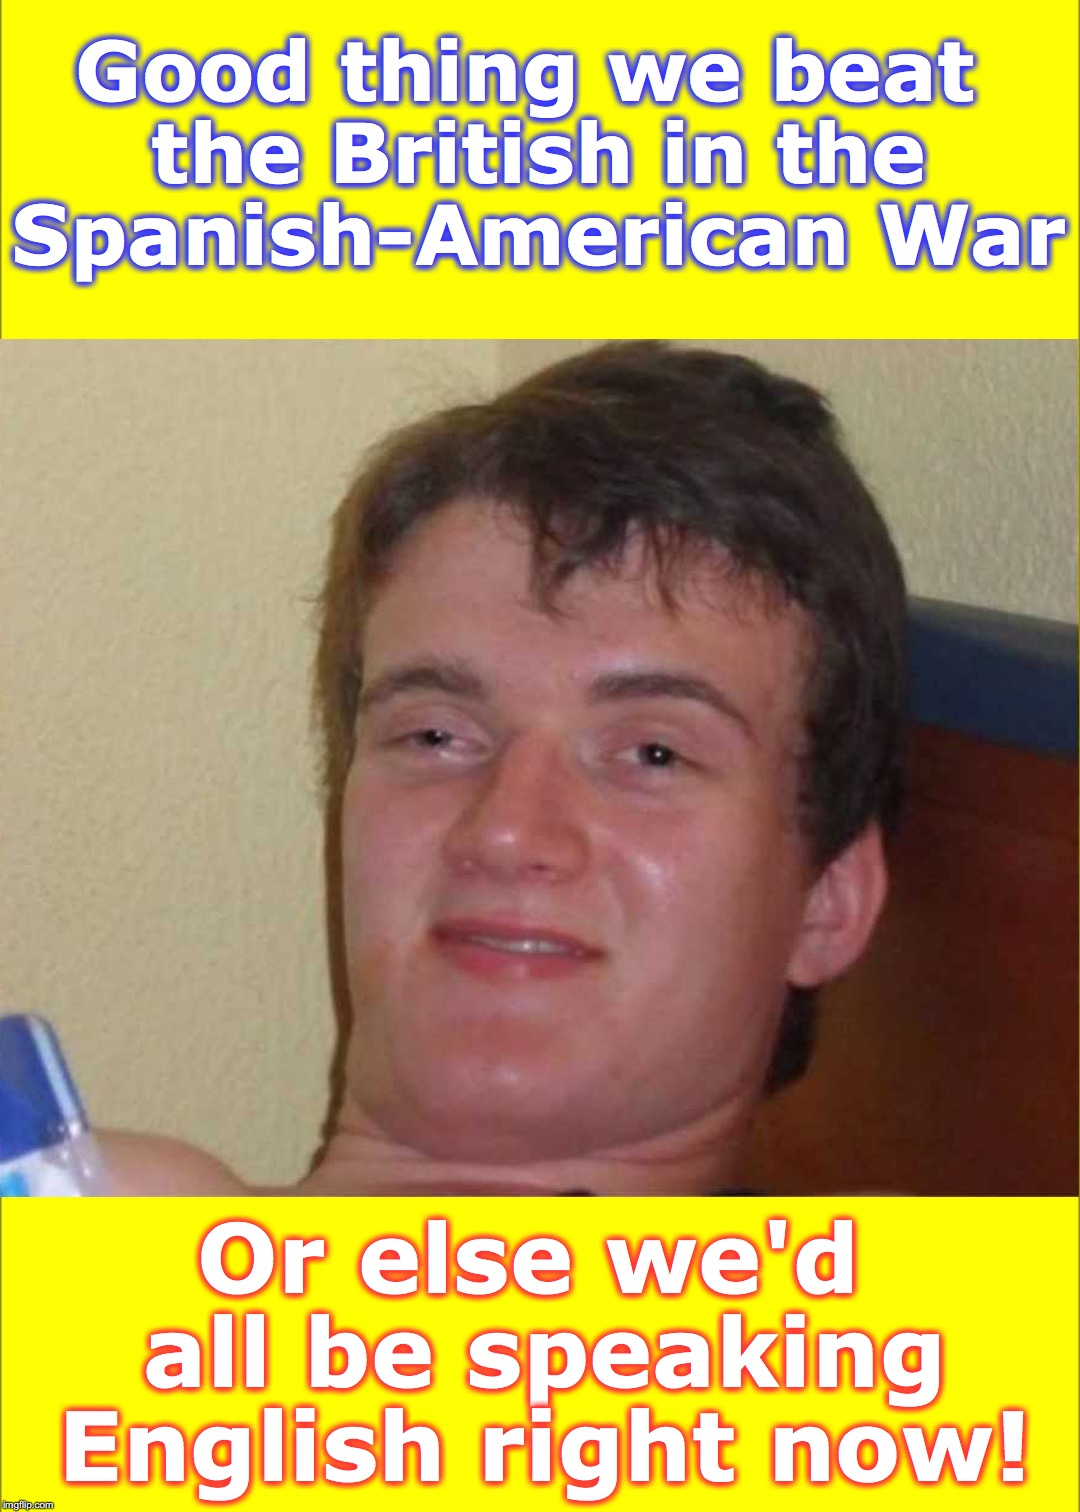 Good thing we beat the British in the Spanish-American War Or else we'd all be speaking English right now! | image tagged in 10 guy,english,british | made w/ Imgflip meme maker